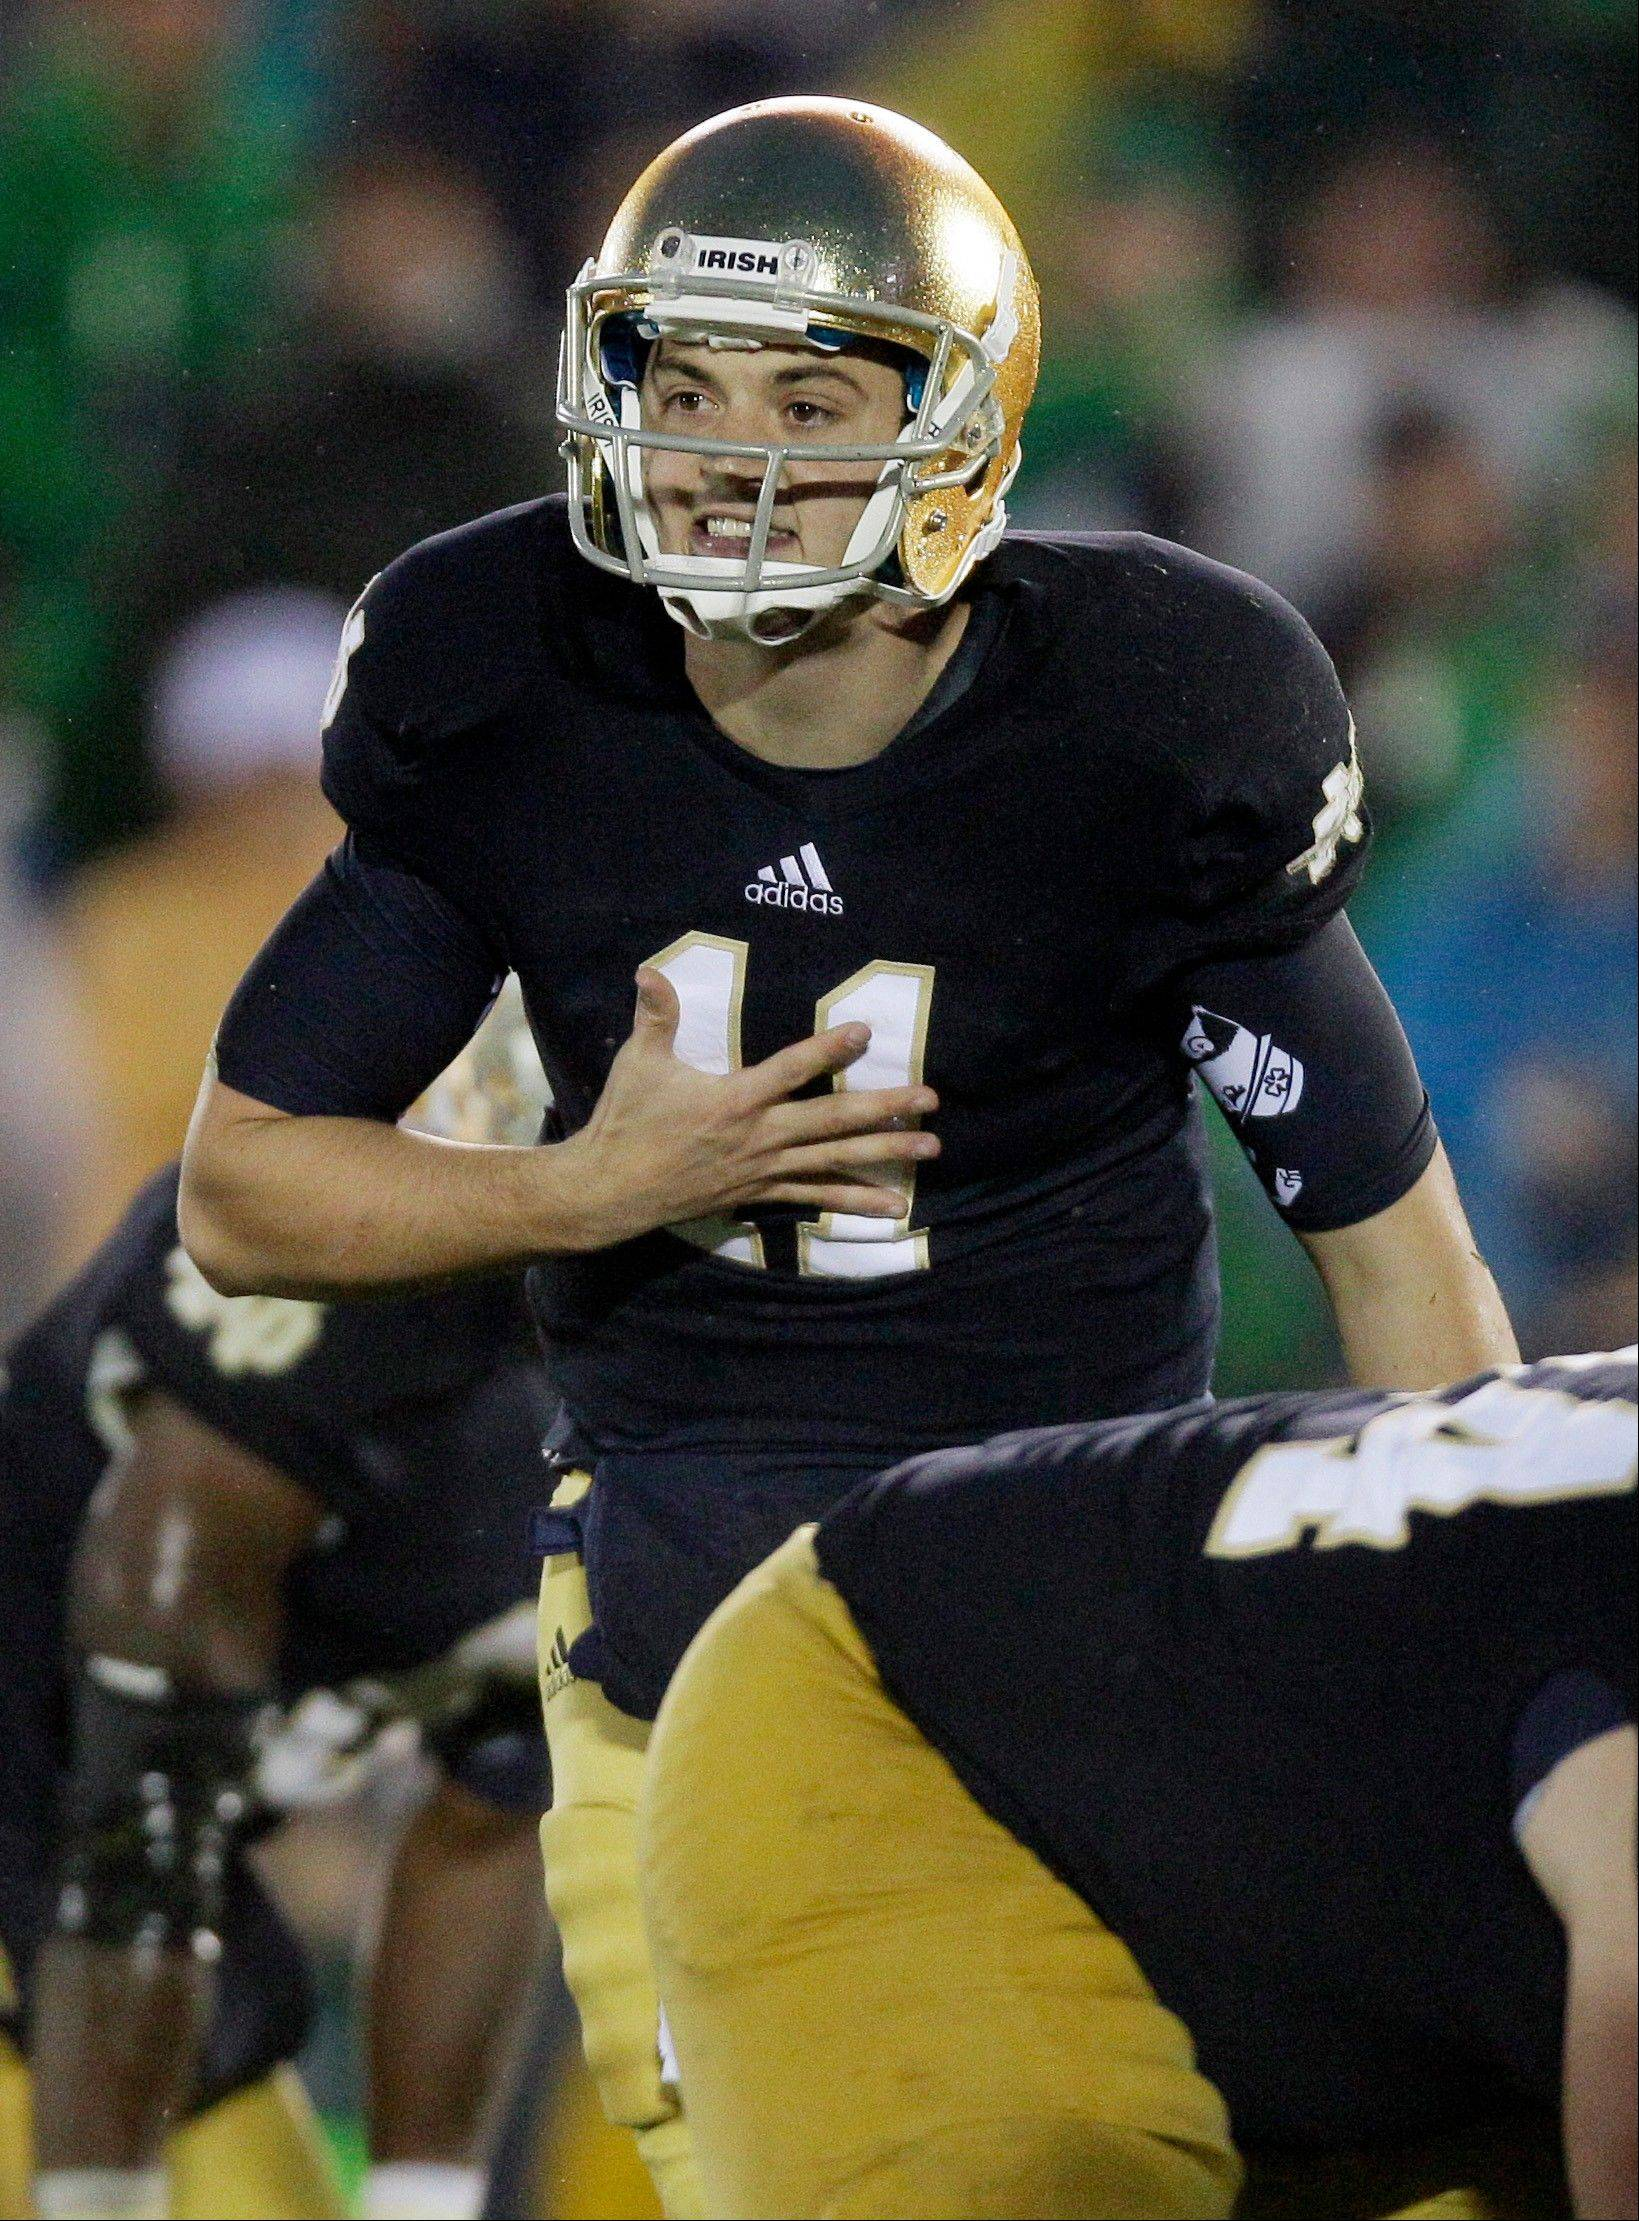 Notre Dame quarterback Tommy Rees talks to teammates during overtime against Stanford on Oct. 13 in South Bend, Ind.